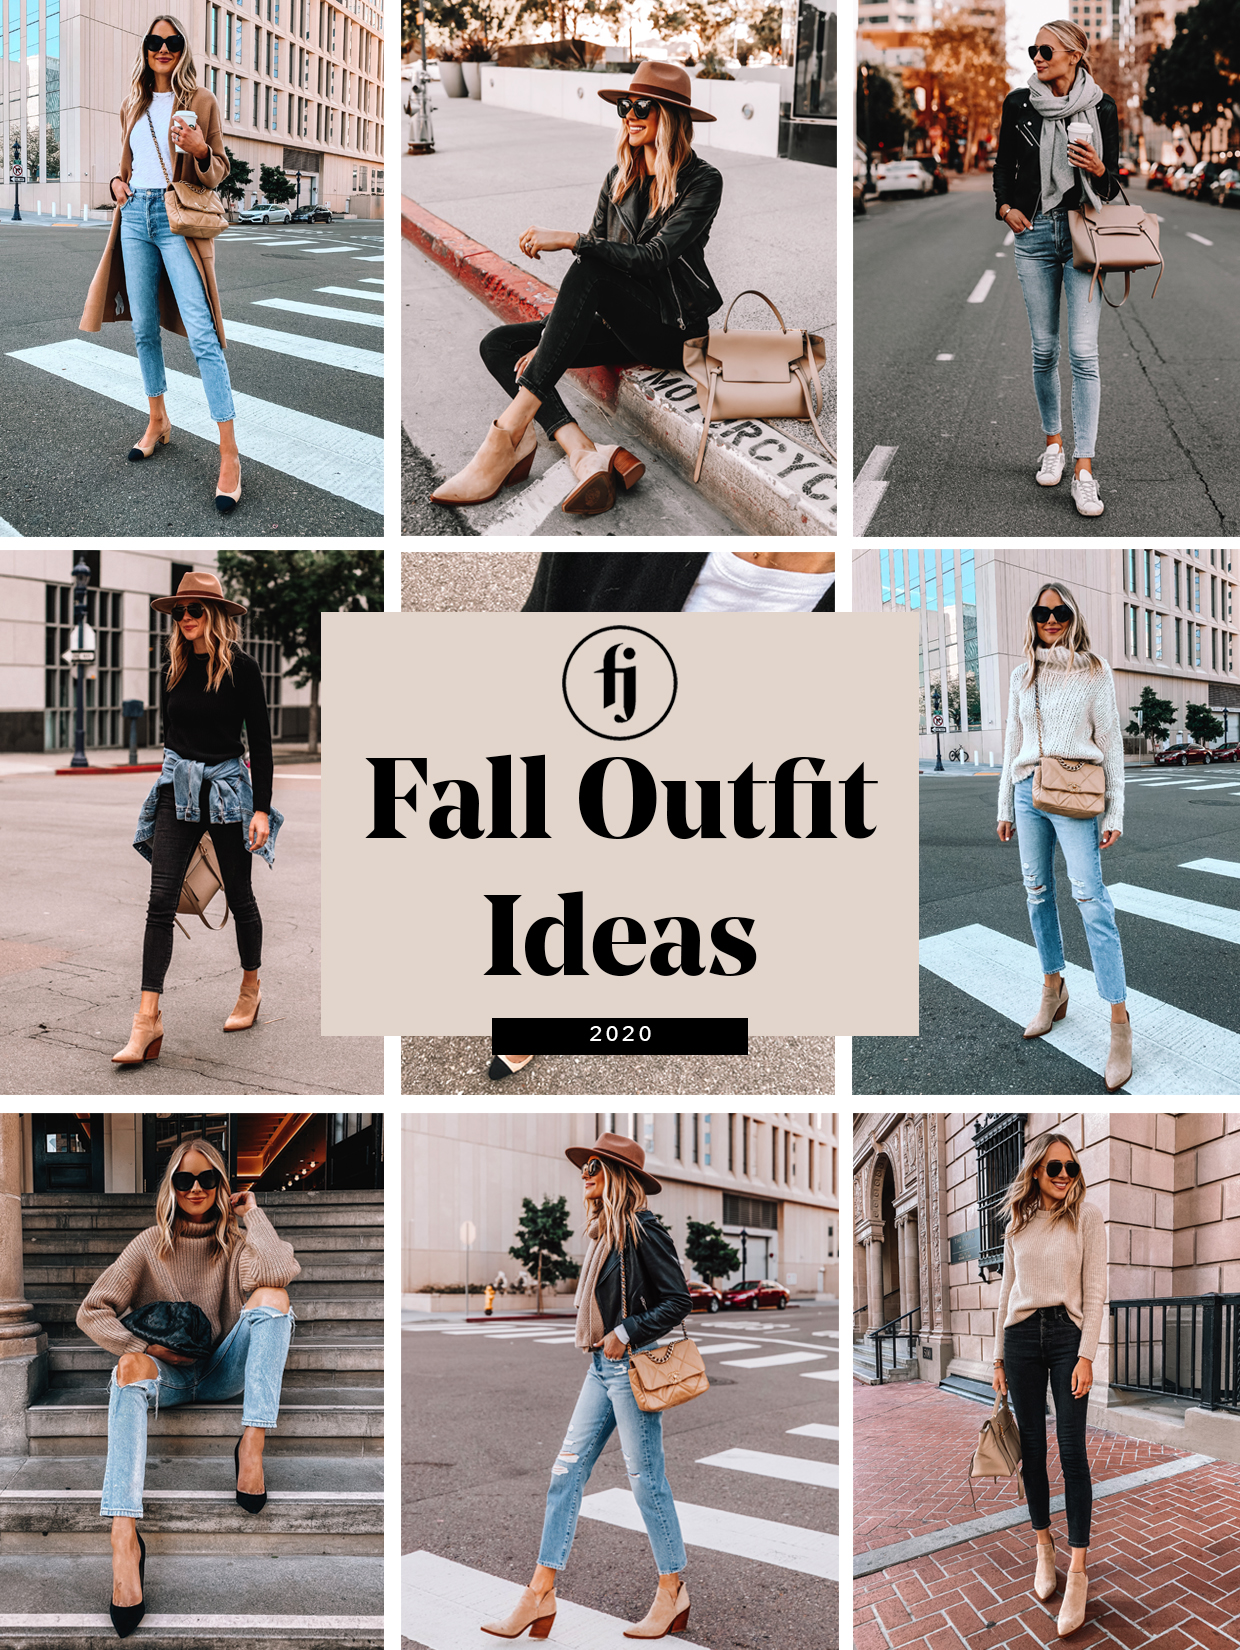 20 Stylish Fall Outfit Ideas   Fall & Autumn Outfit Inspiration ...